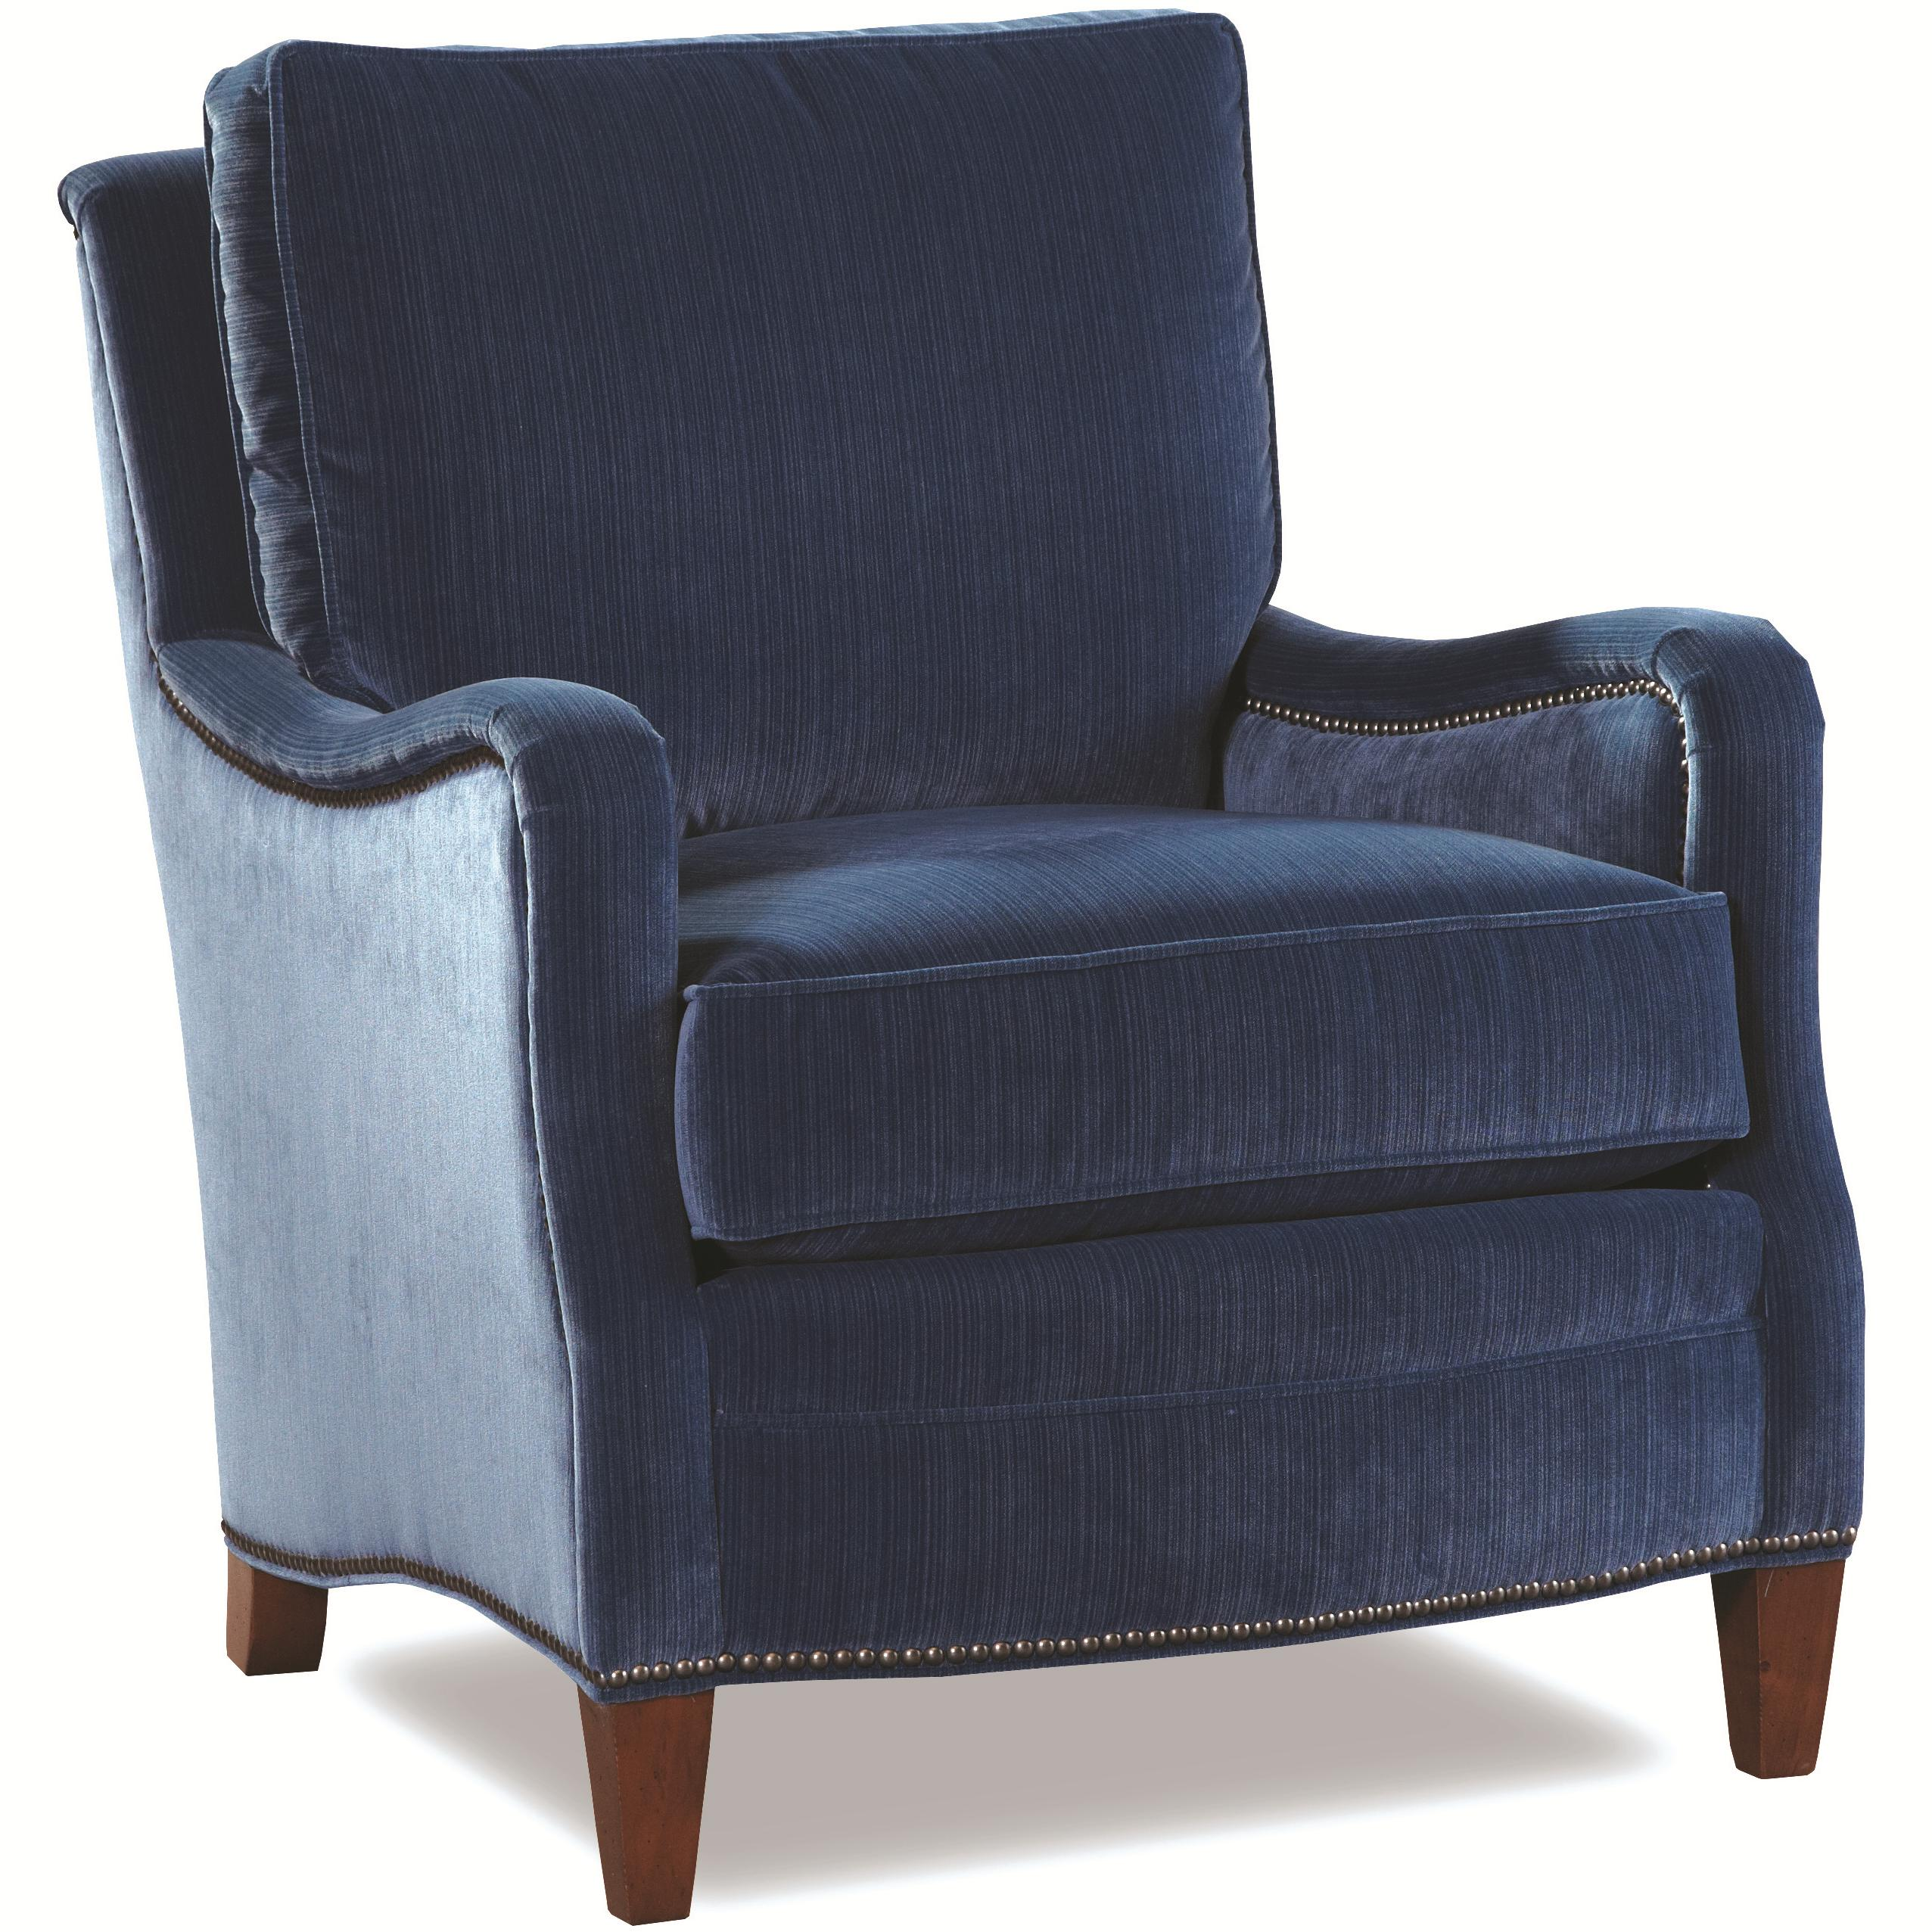 7222 Kingsley Chair by Huntington House at Belfort Furniture